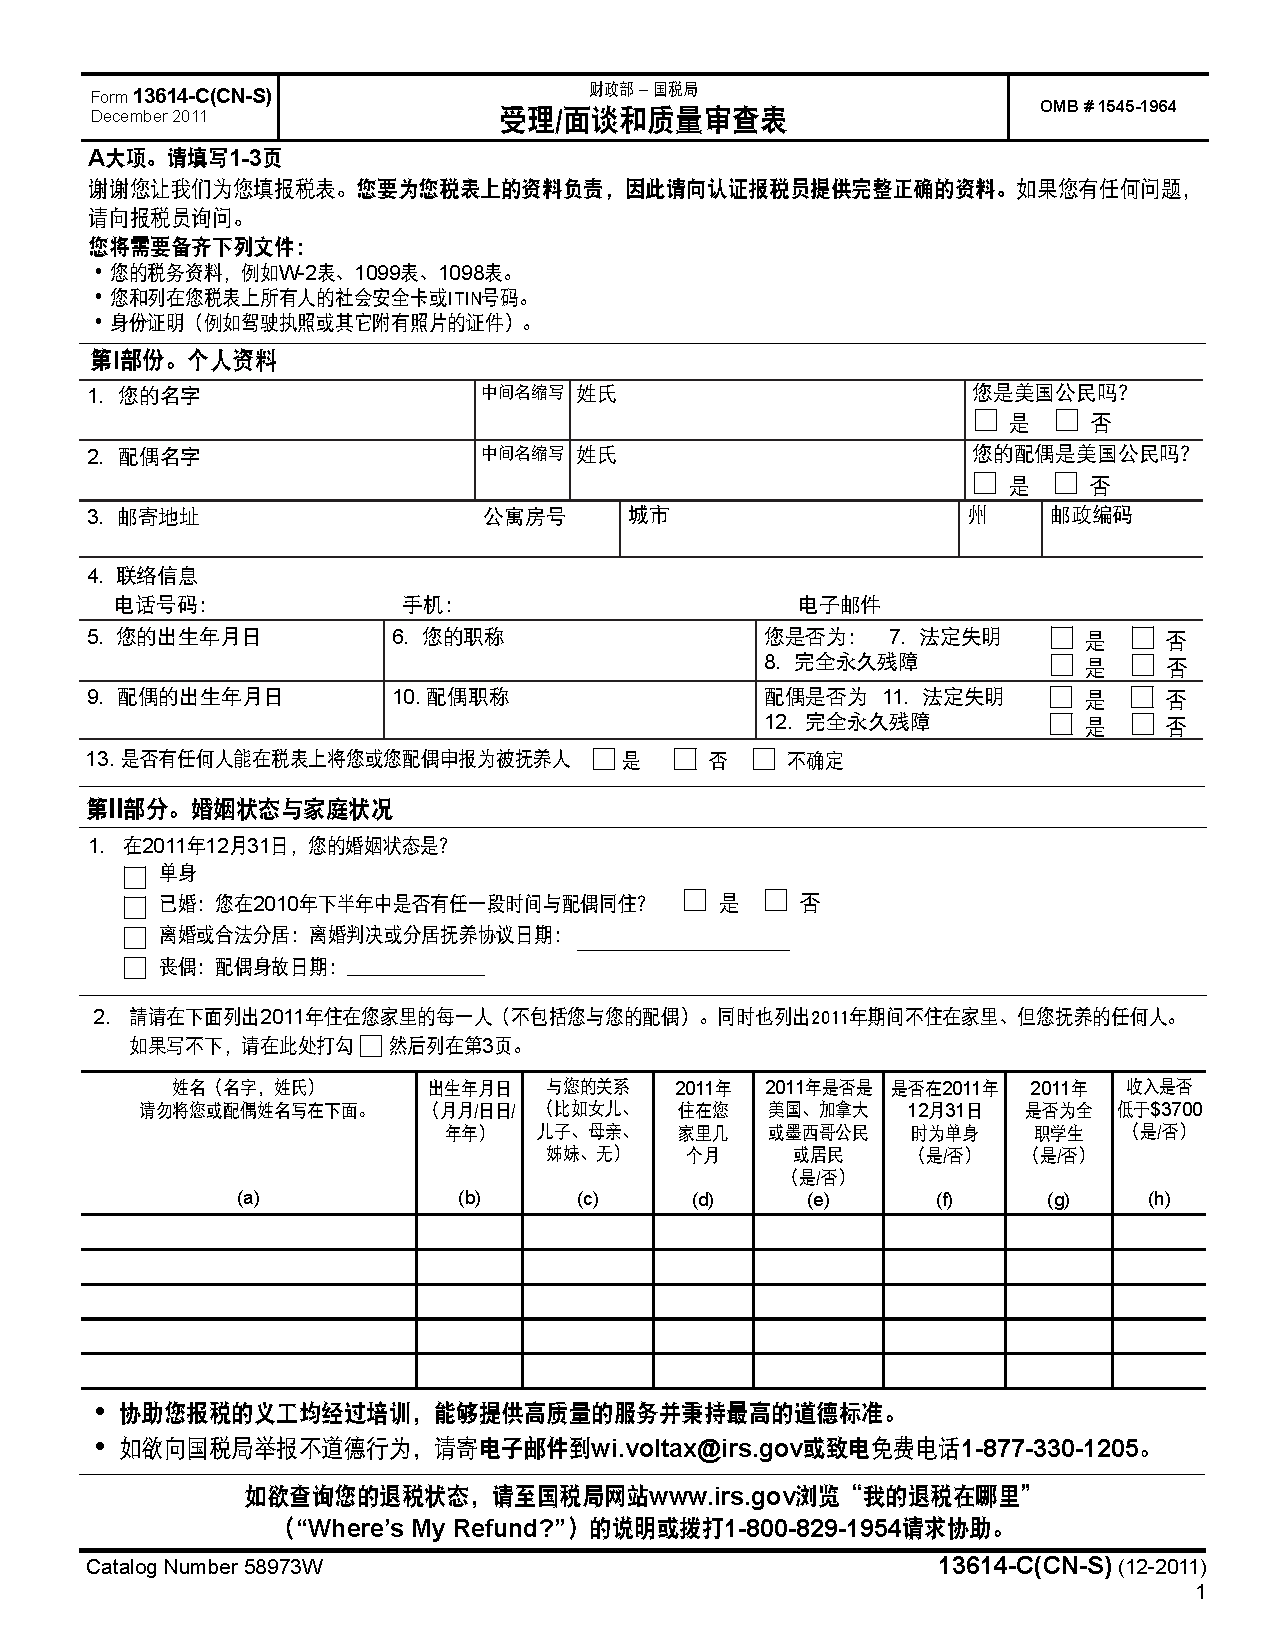 Form C Cn S Intake Interview Amp Quality Review